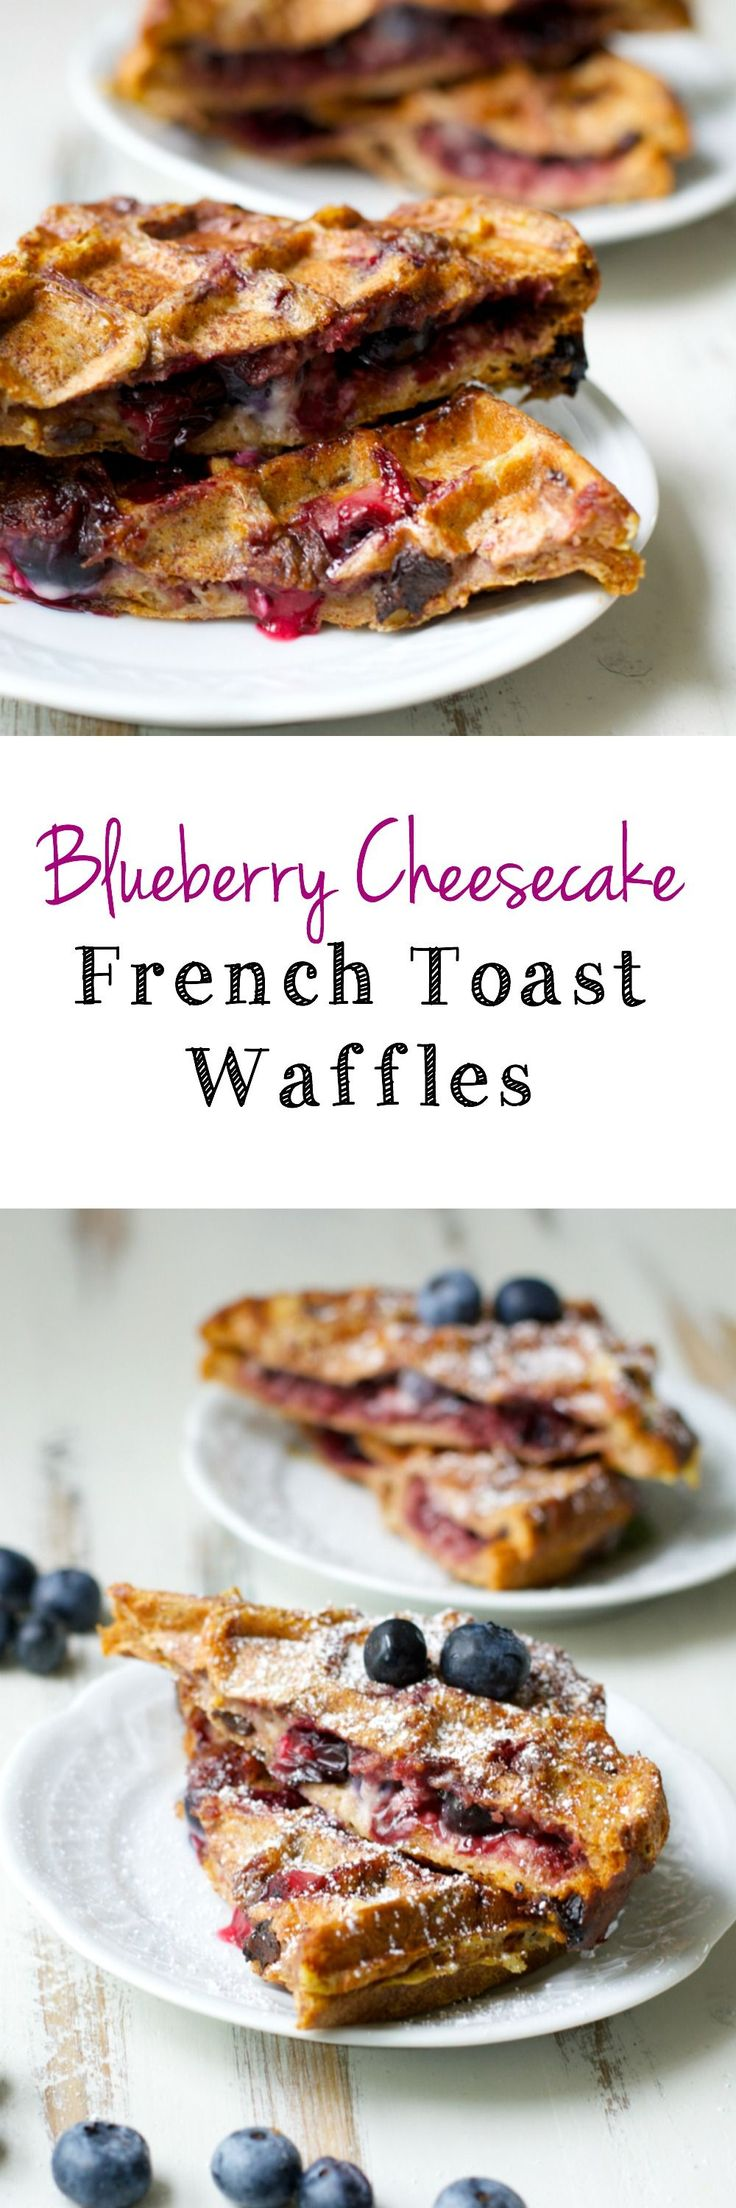 手机壳定制online shopping clothing Blueberry Cheesecake Stuffed French Toast Waffles Seriously the best waffles ever And really easy